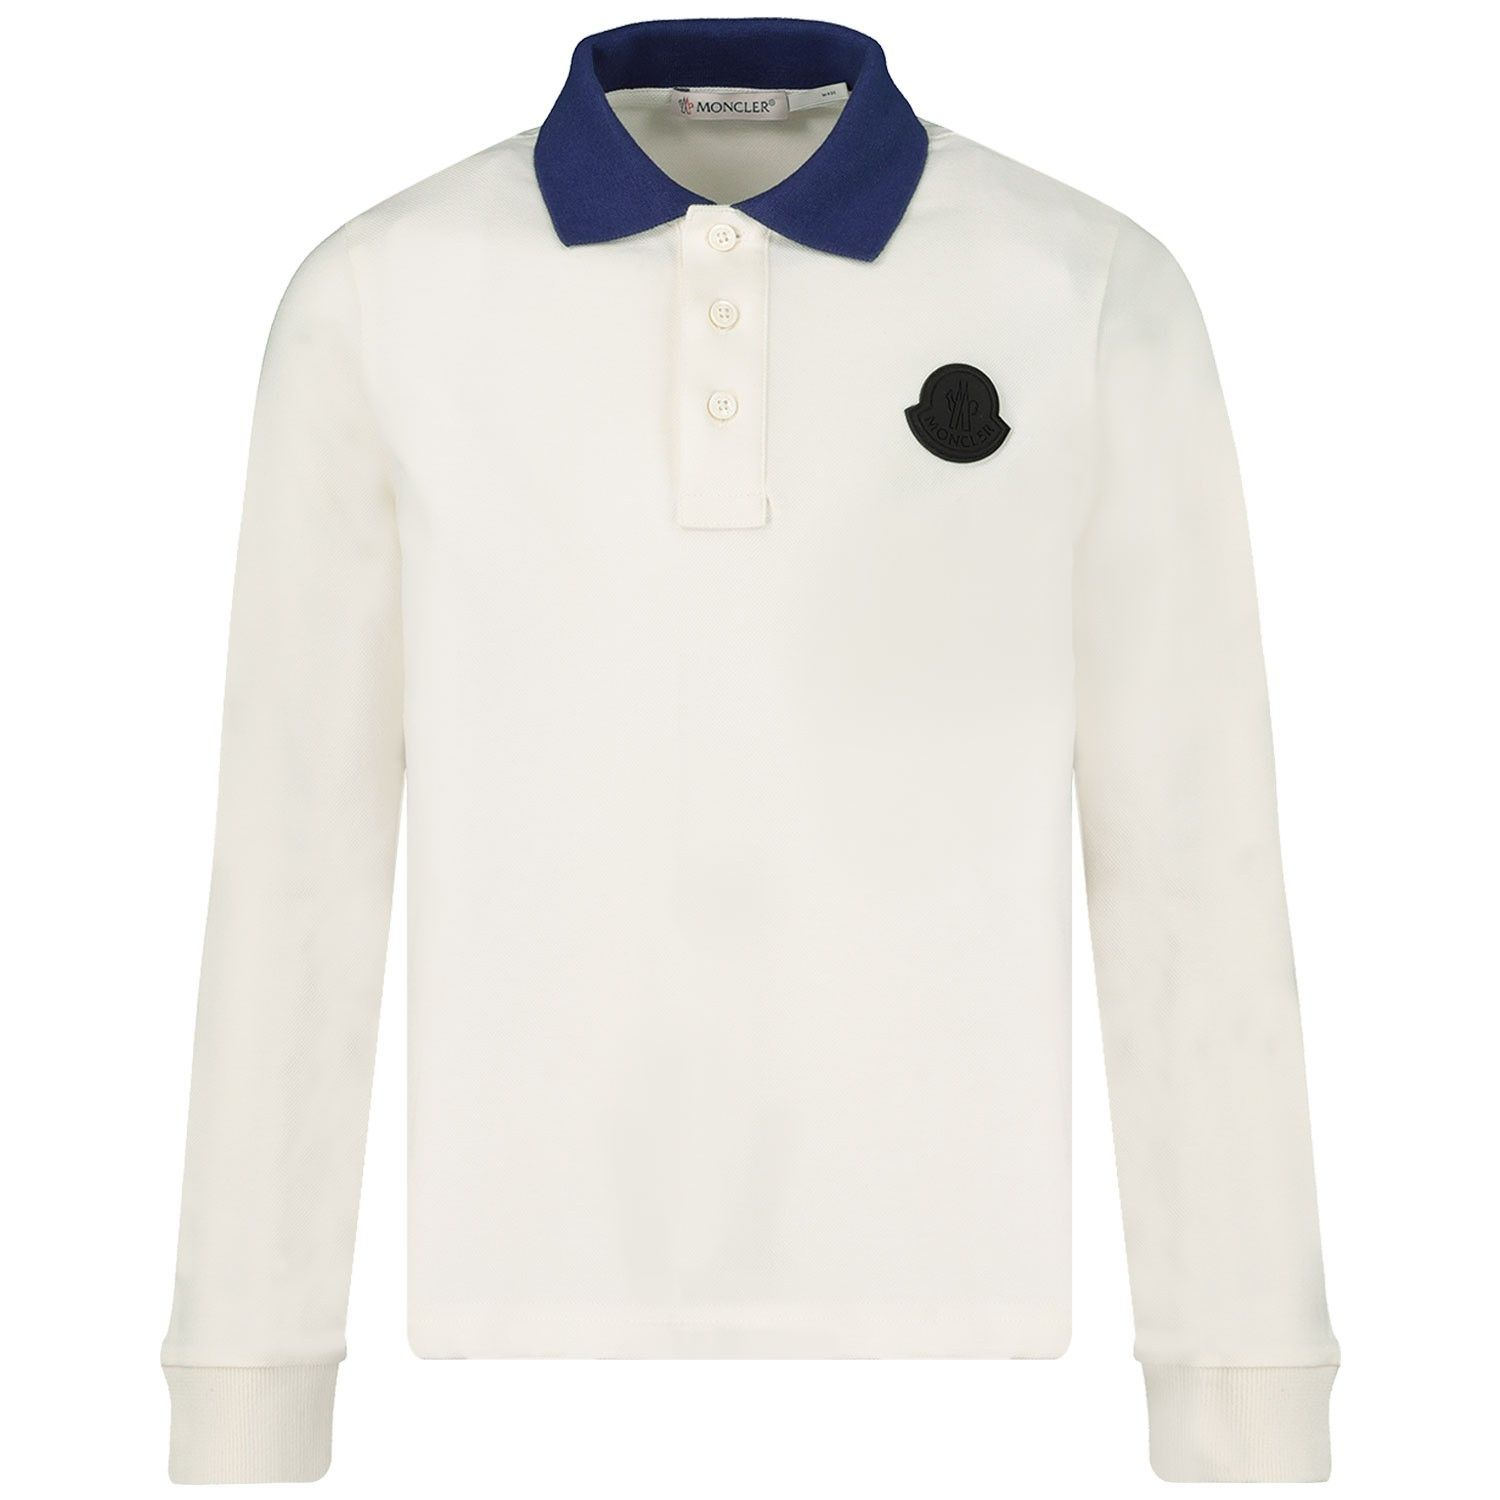 Picture of Moncler 8312105 kids polo shirt off white